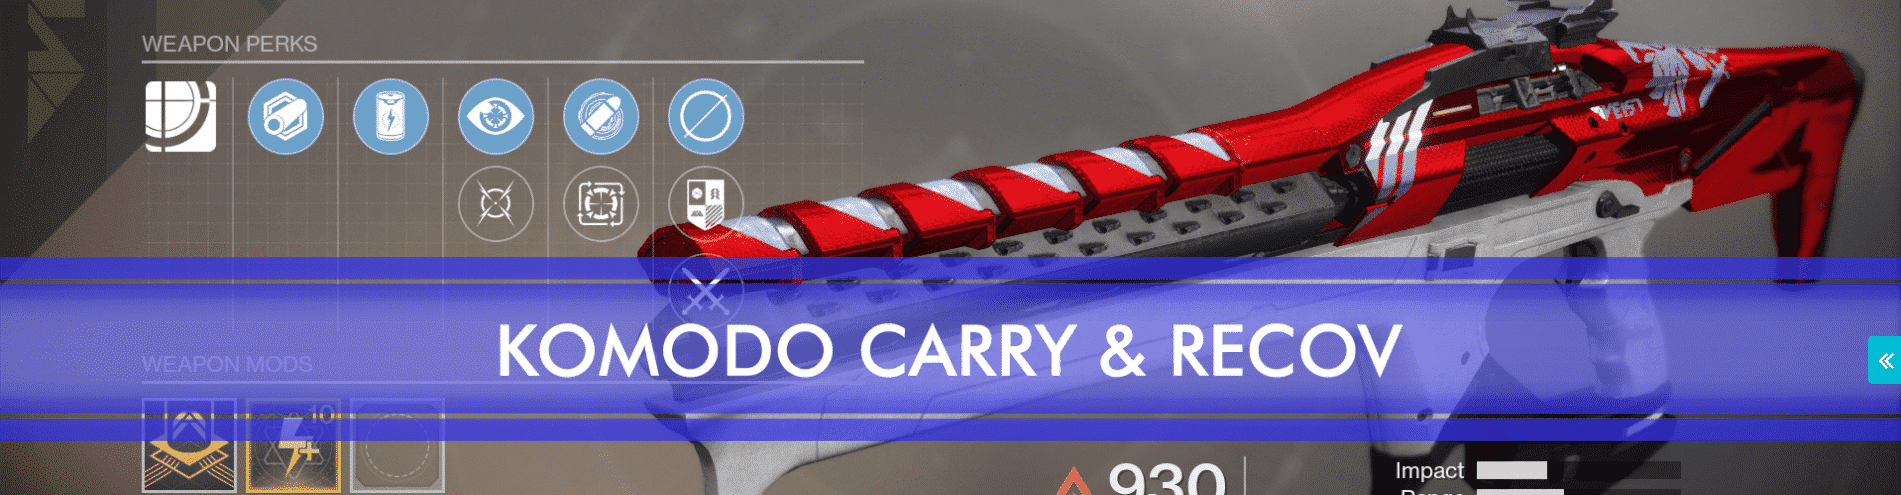 komodo 4fr carry recov img